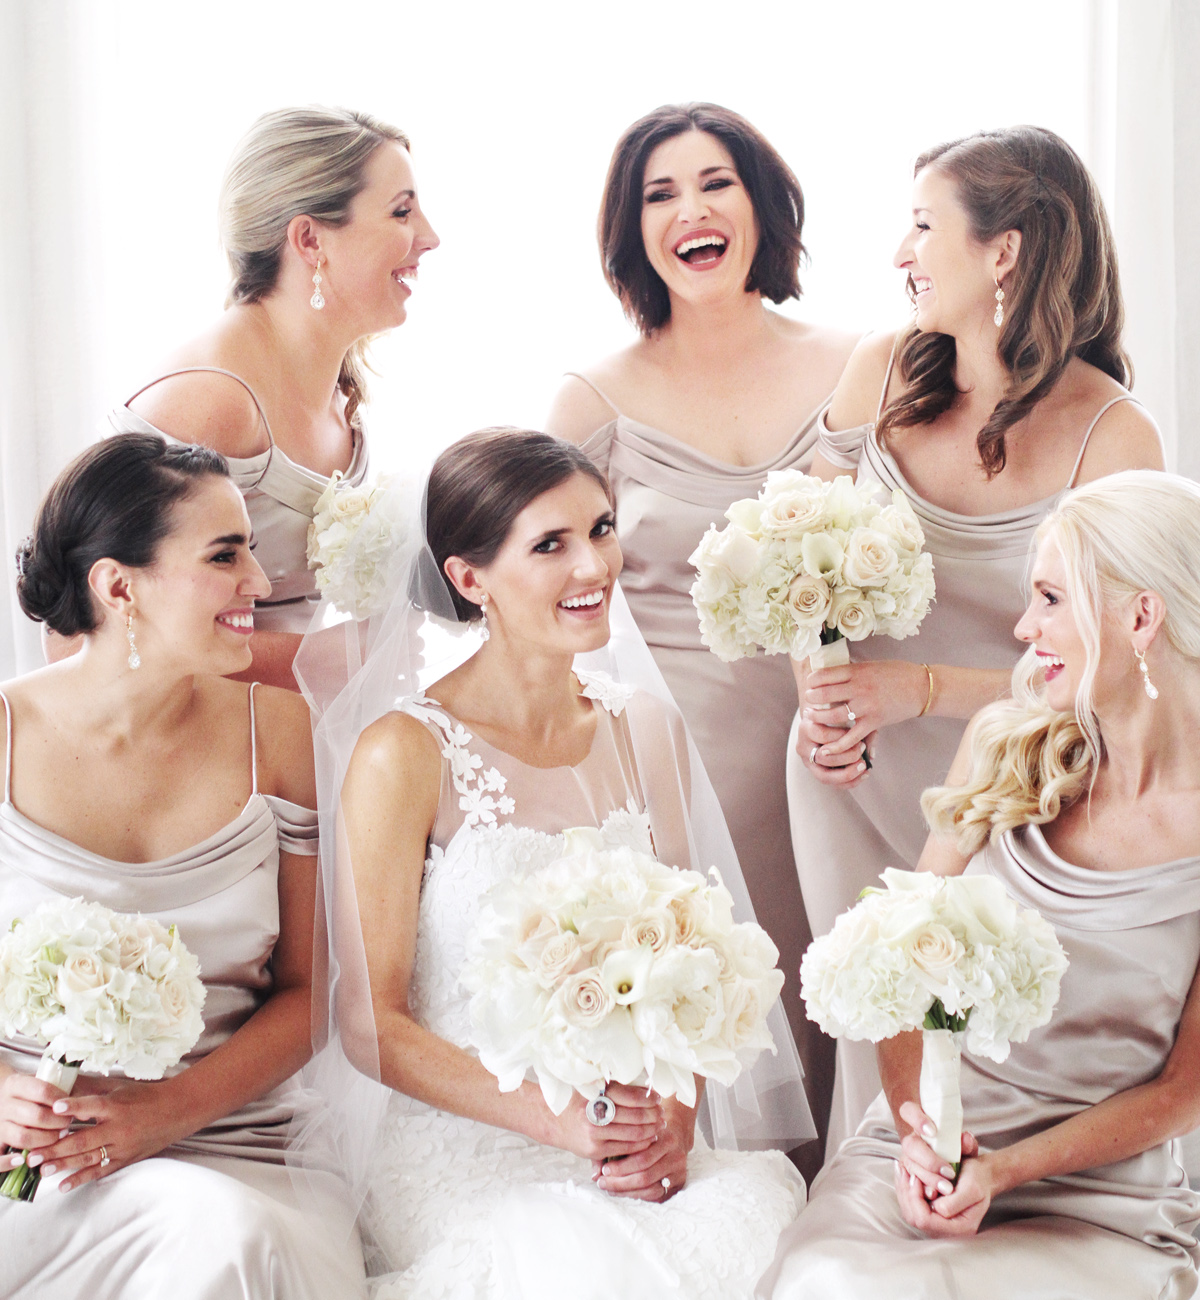 bridesmaids laughing together